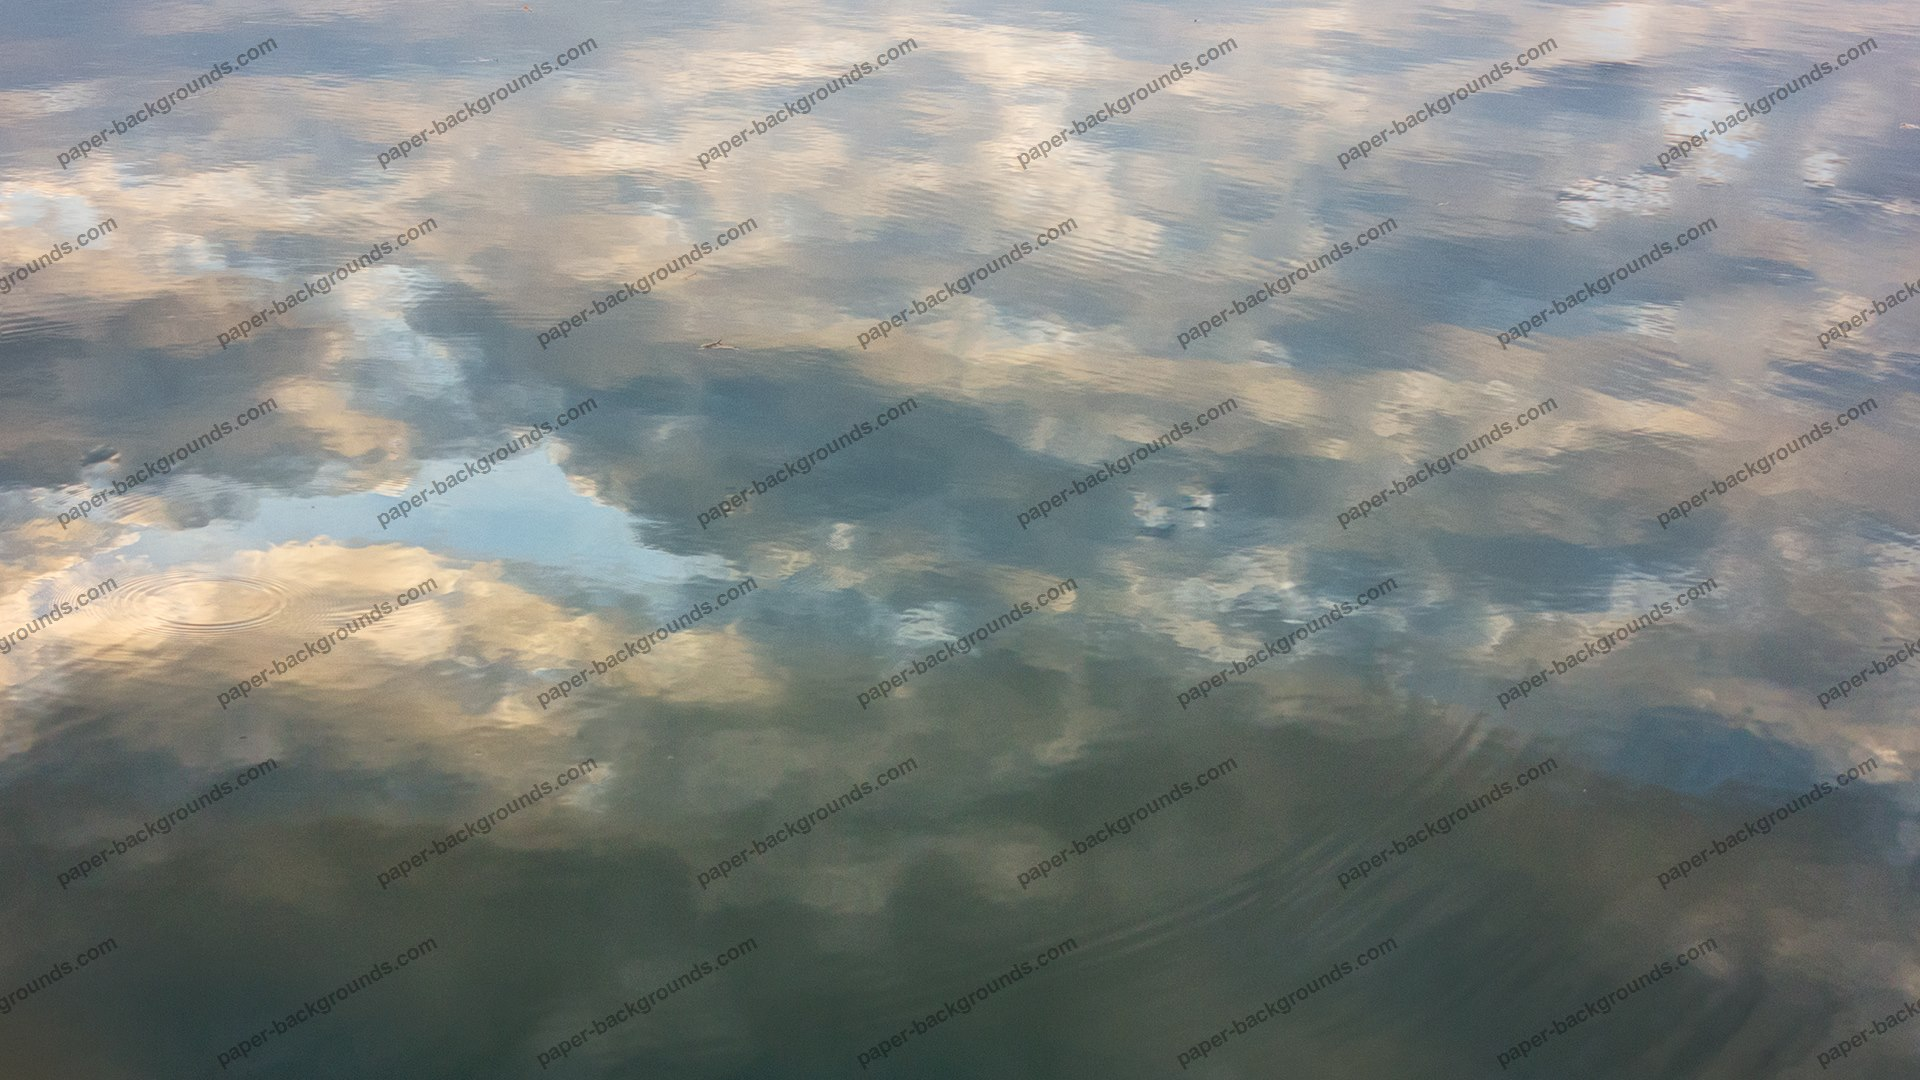 Clouds Reflected In Water HD 1920 x 1080p